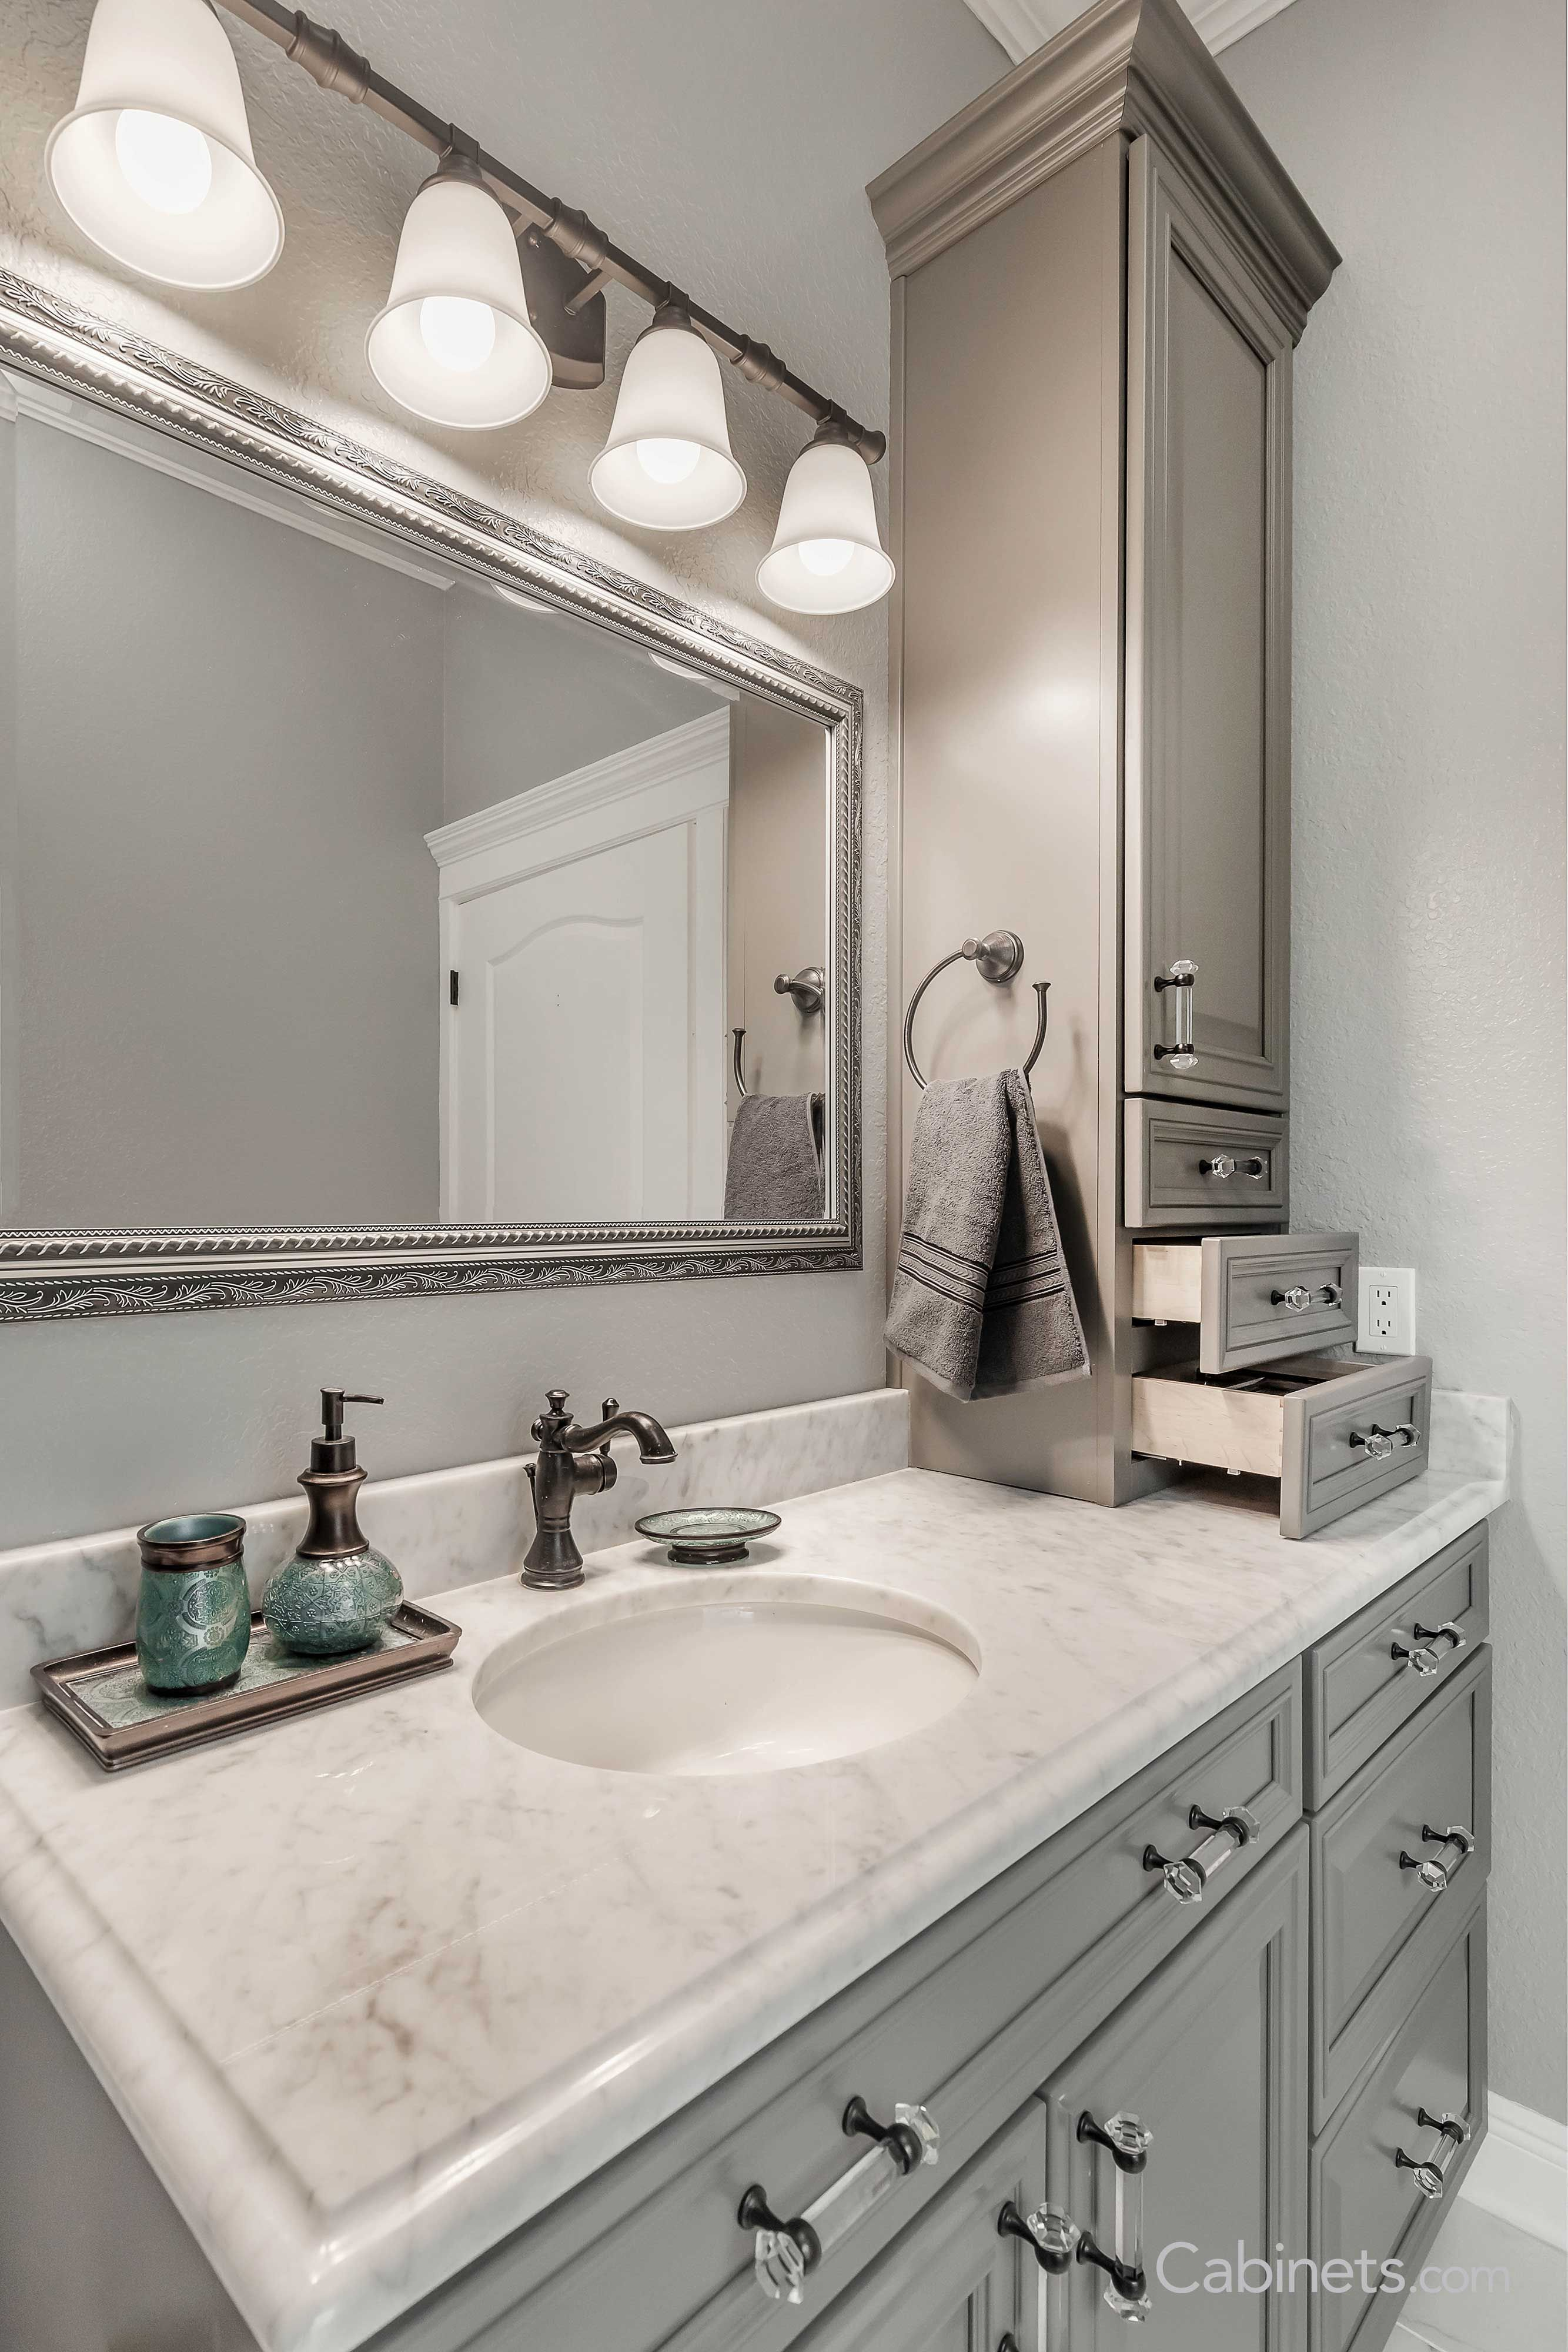 Stunning Elegant Bathroom Featuring Our Bronson Maple Creek Stone Cabinets Kitchen Cabinets Makeover Bathroom Vanity Designs Grey Kitchen Cabinets